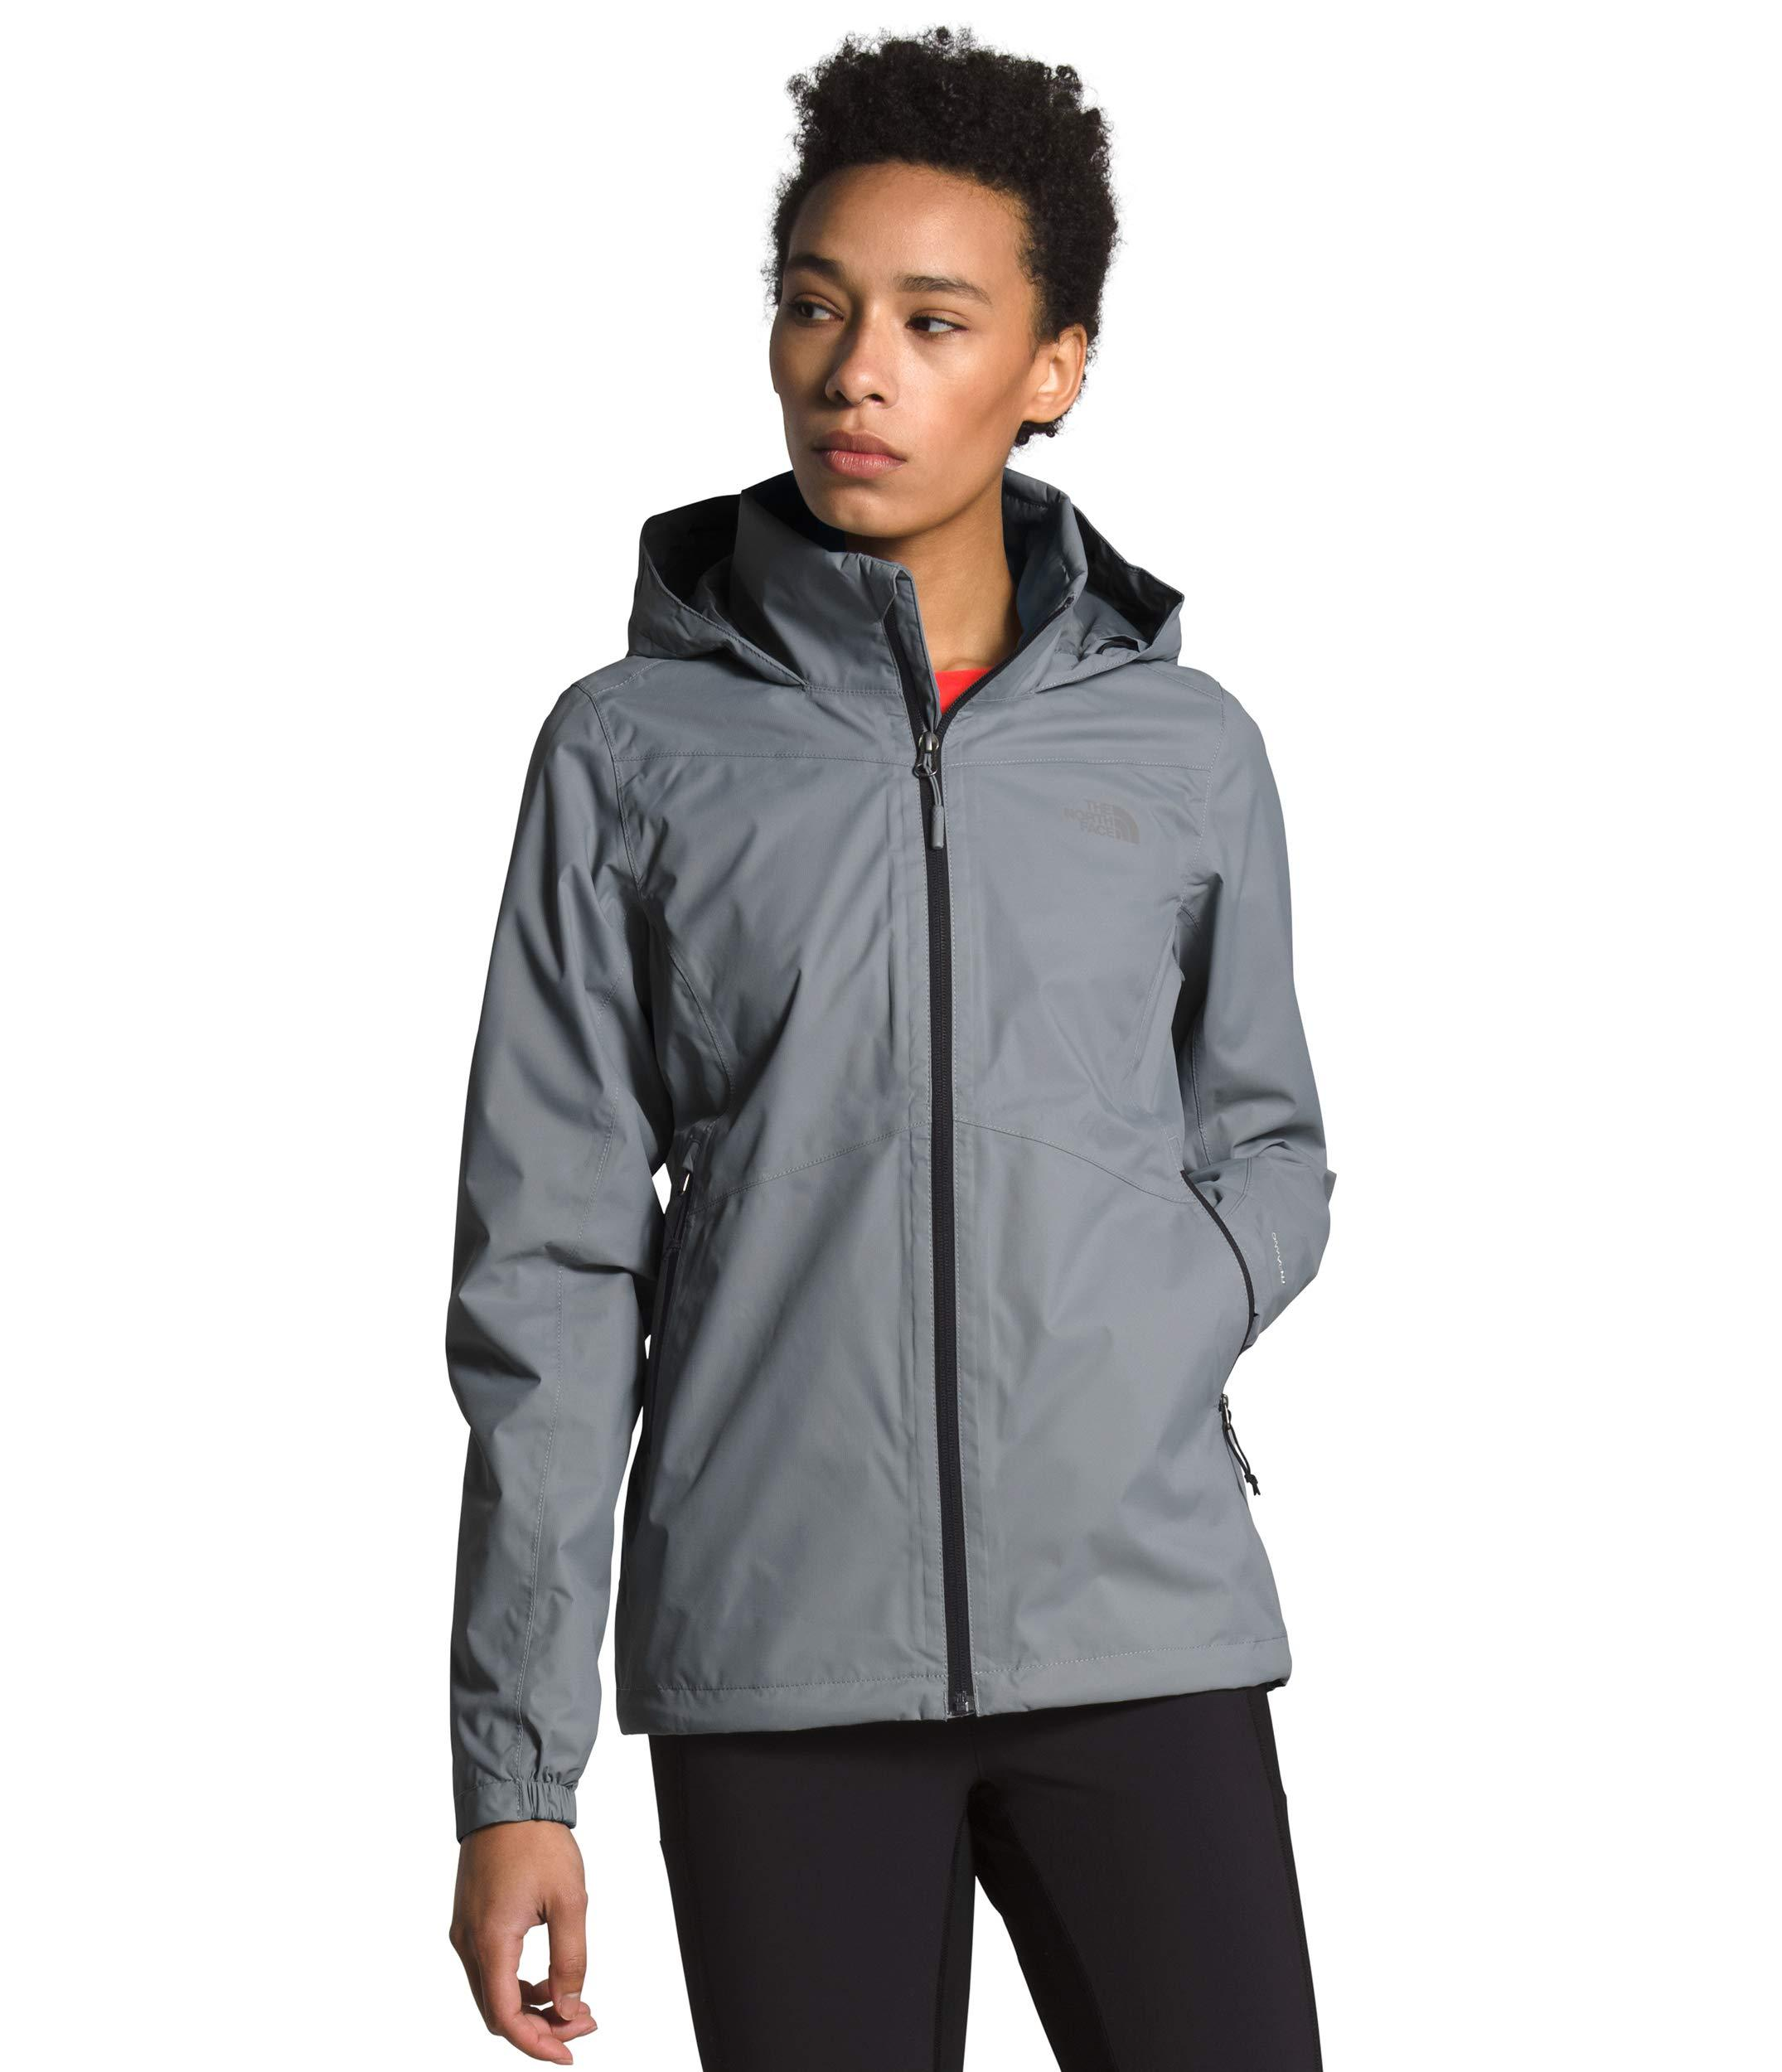 Women's The North Face Resolve Plus Jacket  in Mid Grey